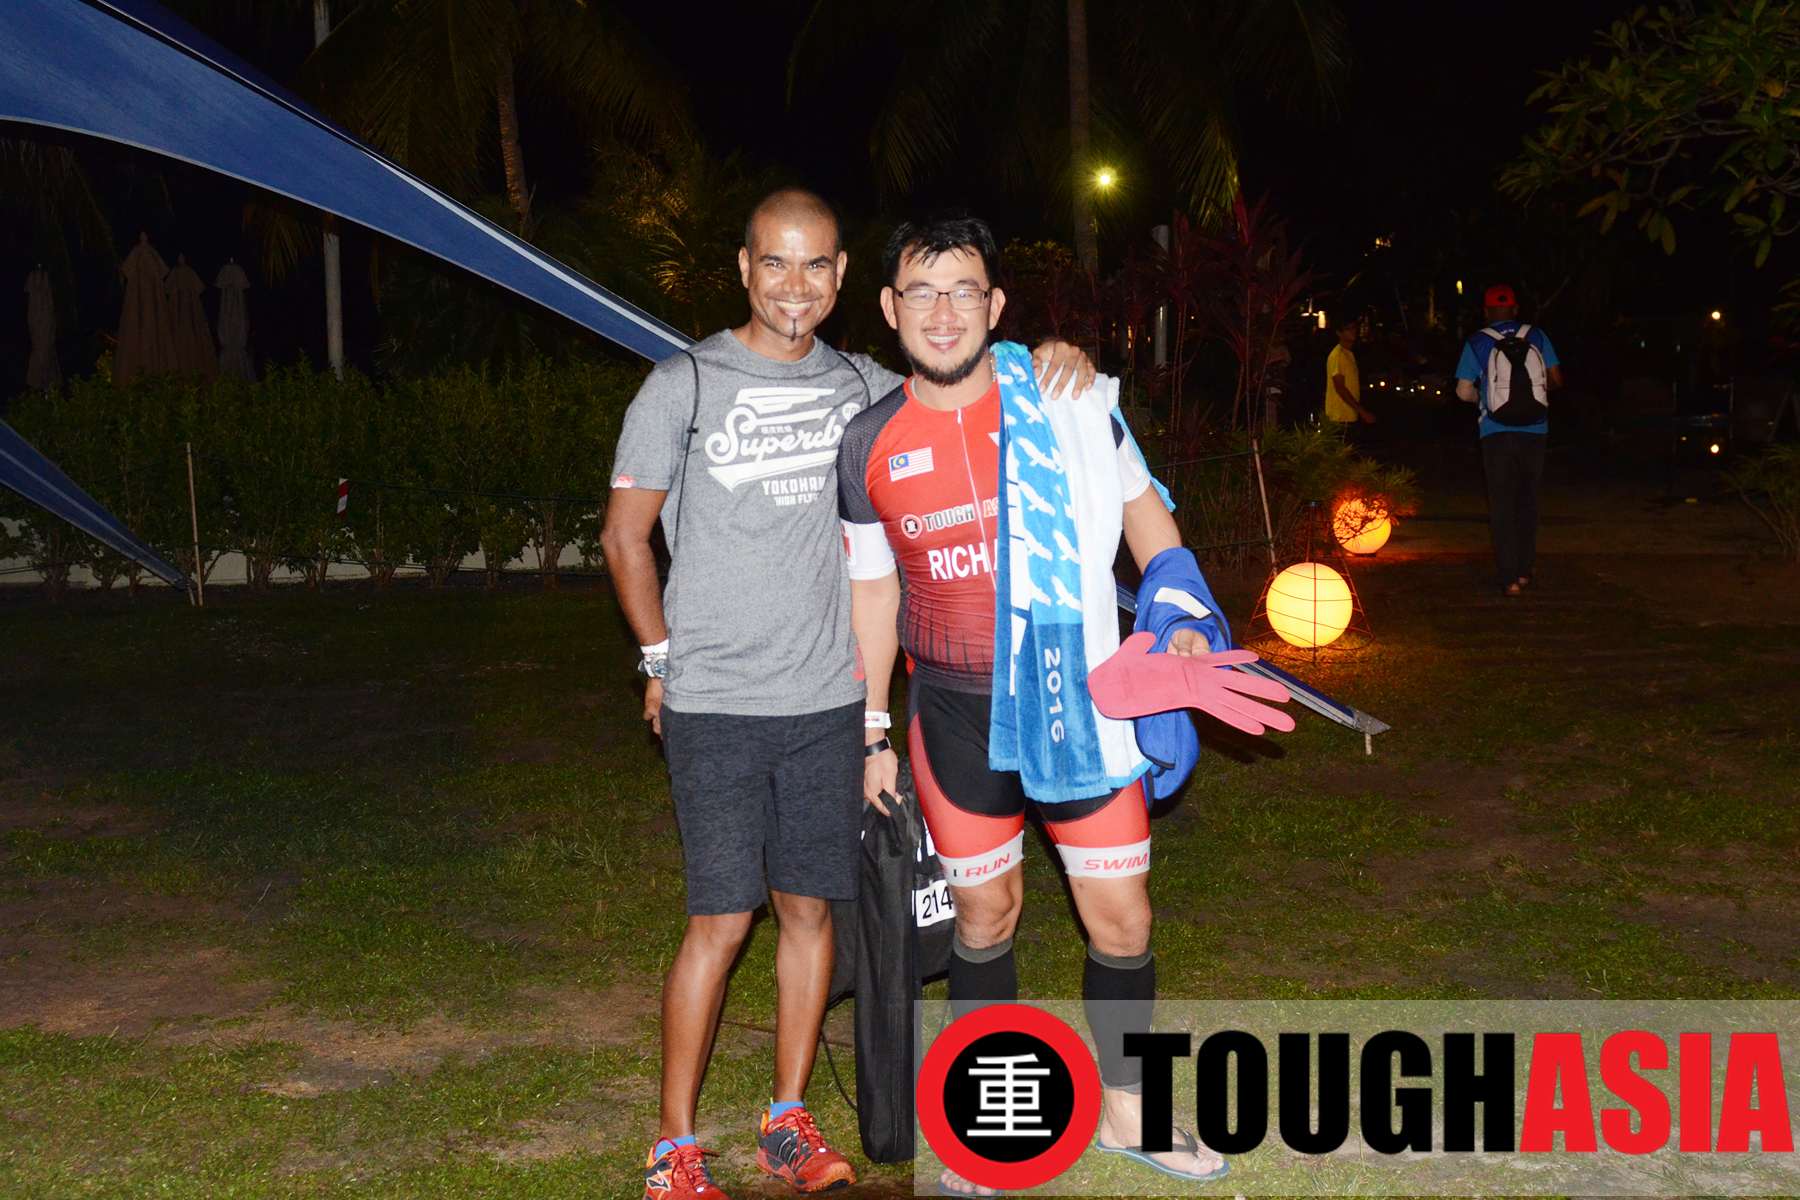 Ultraman Kannan (left) gave valuable advice in breaking down the race to smaller portions helped Richard in the race.